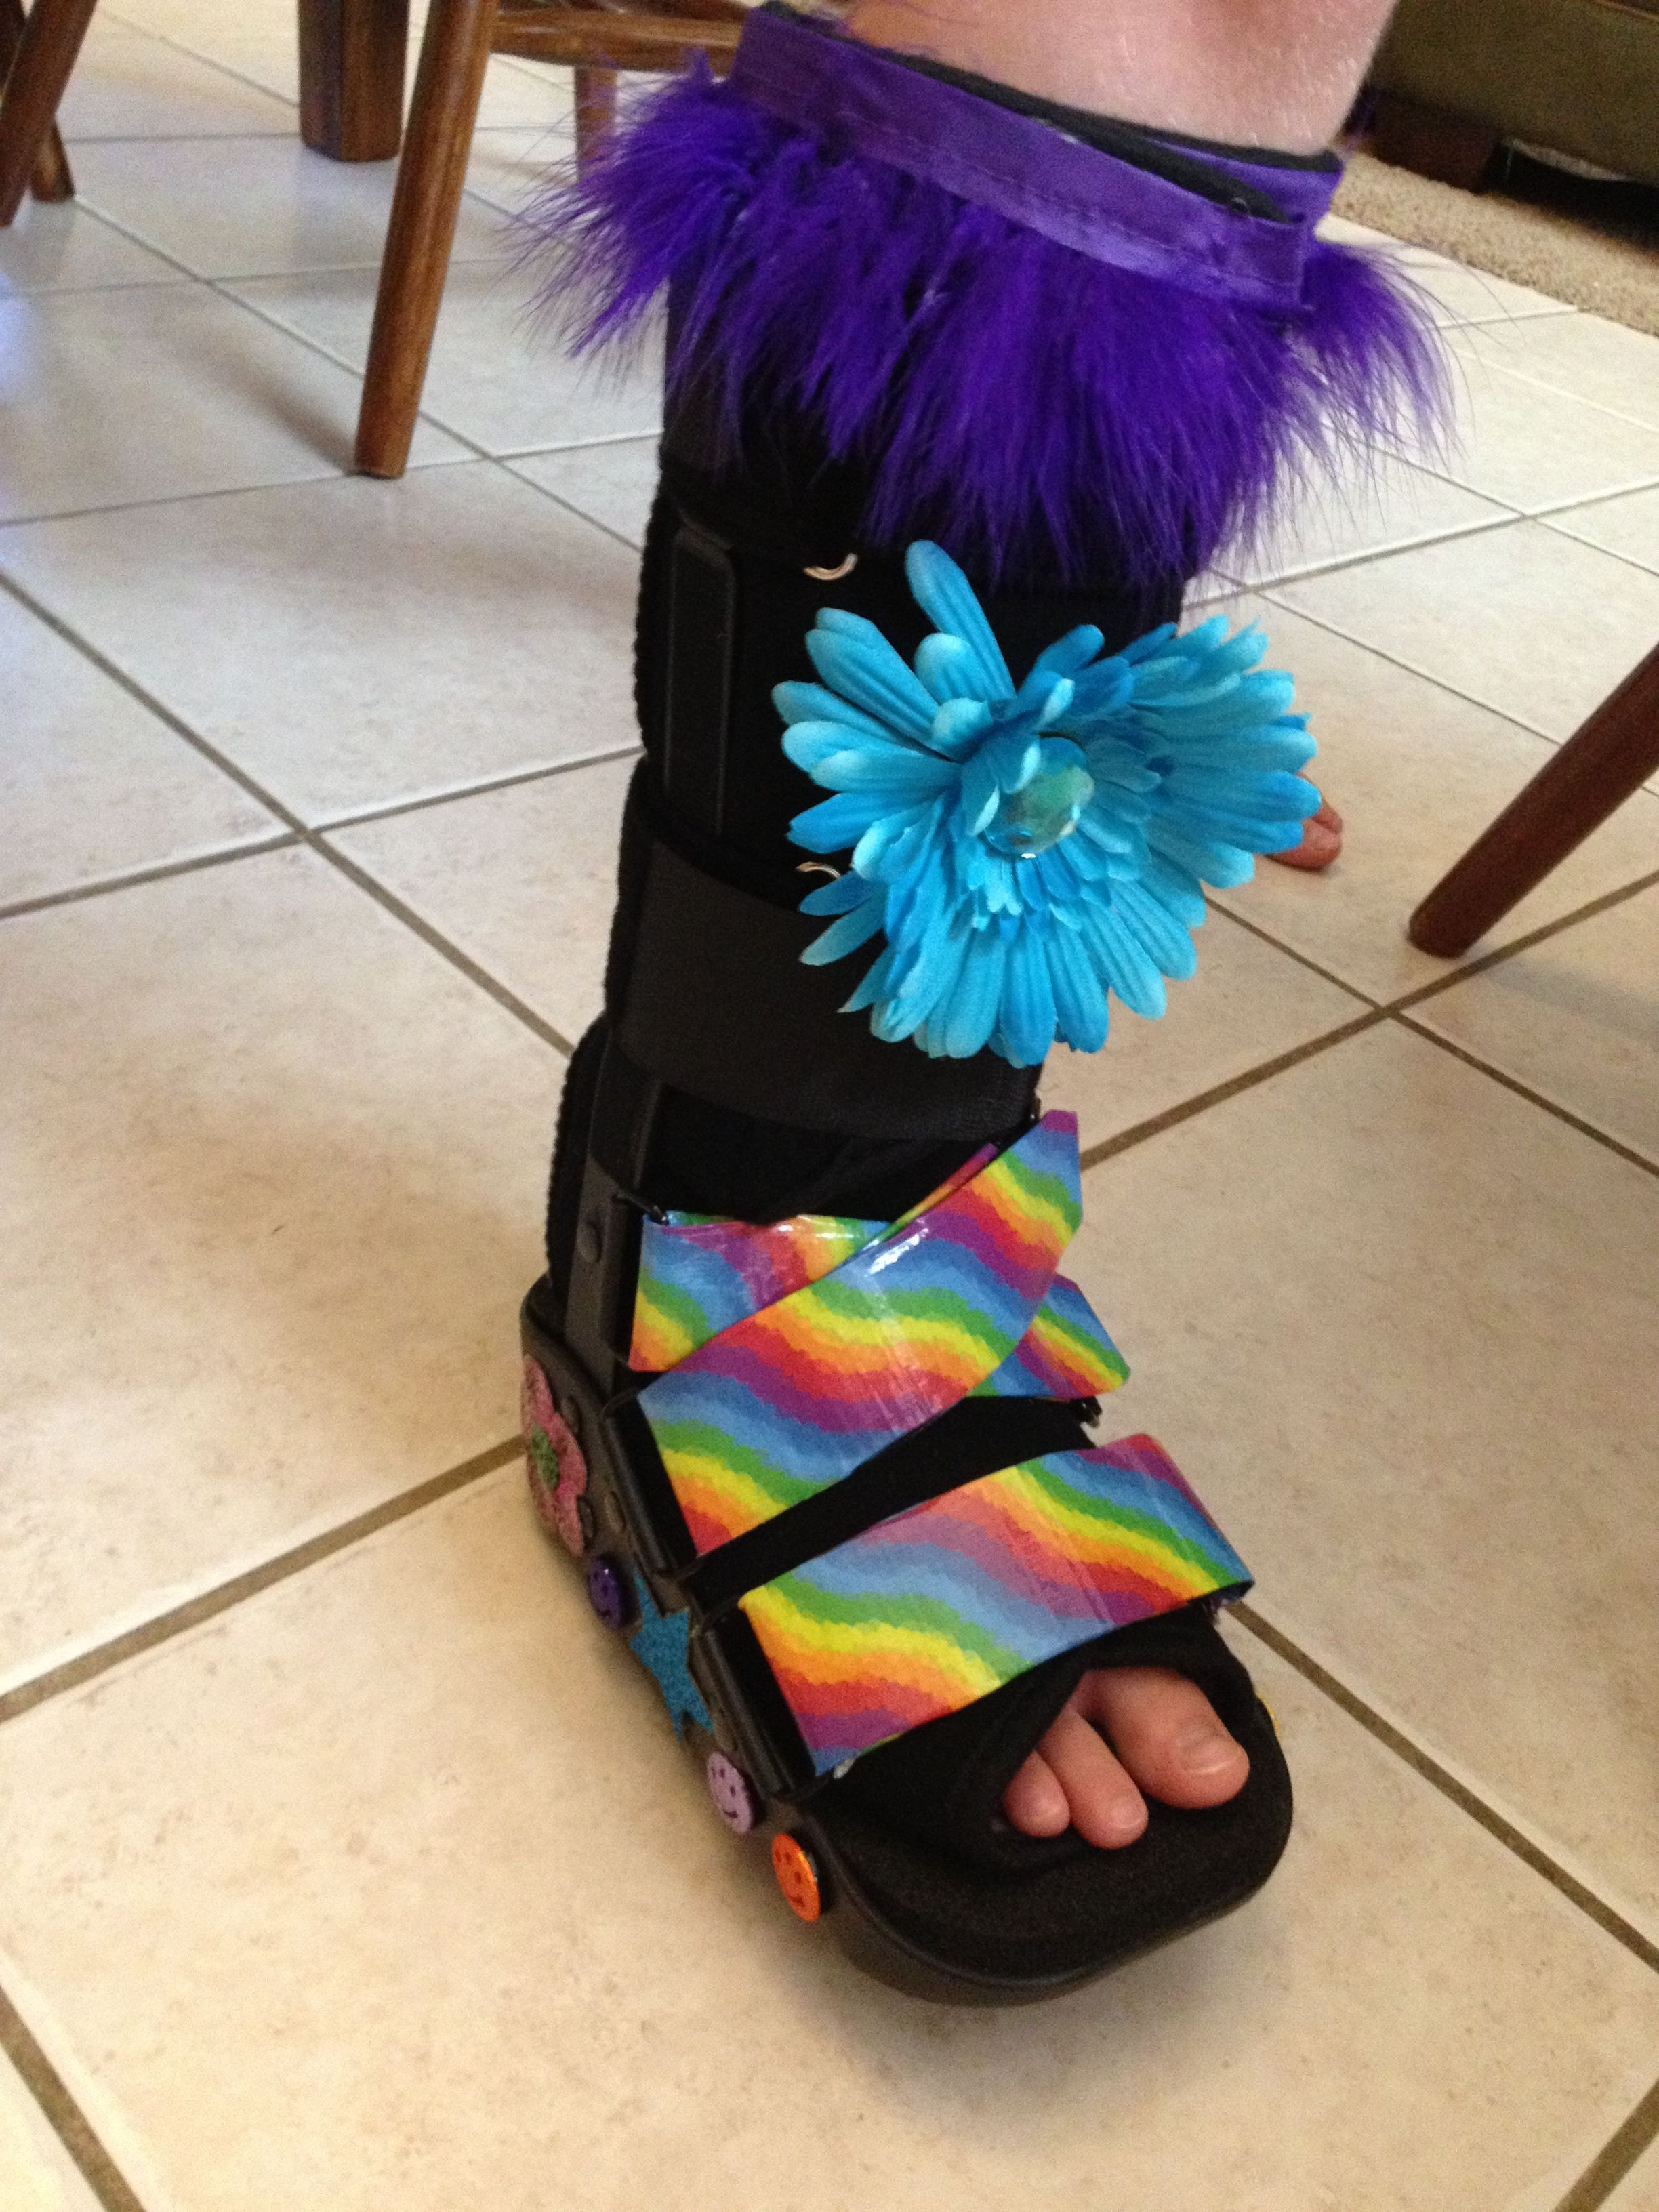 The blinged up boot! Walking boot cast | Courtney's boot | Walking